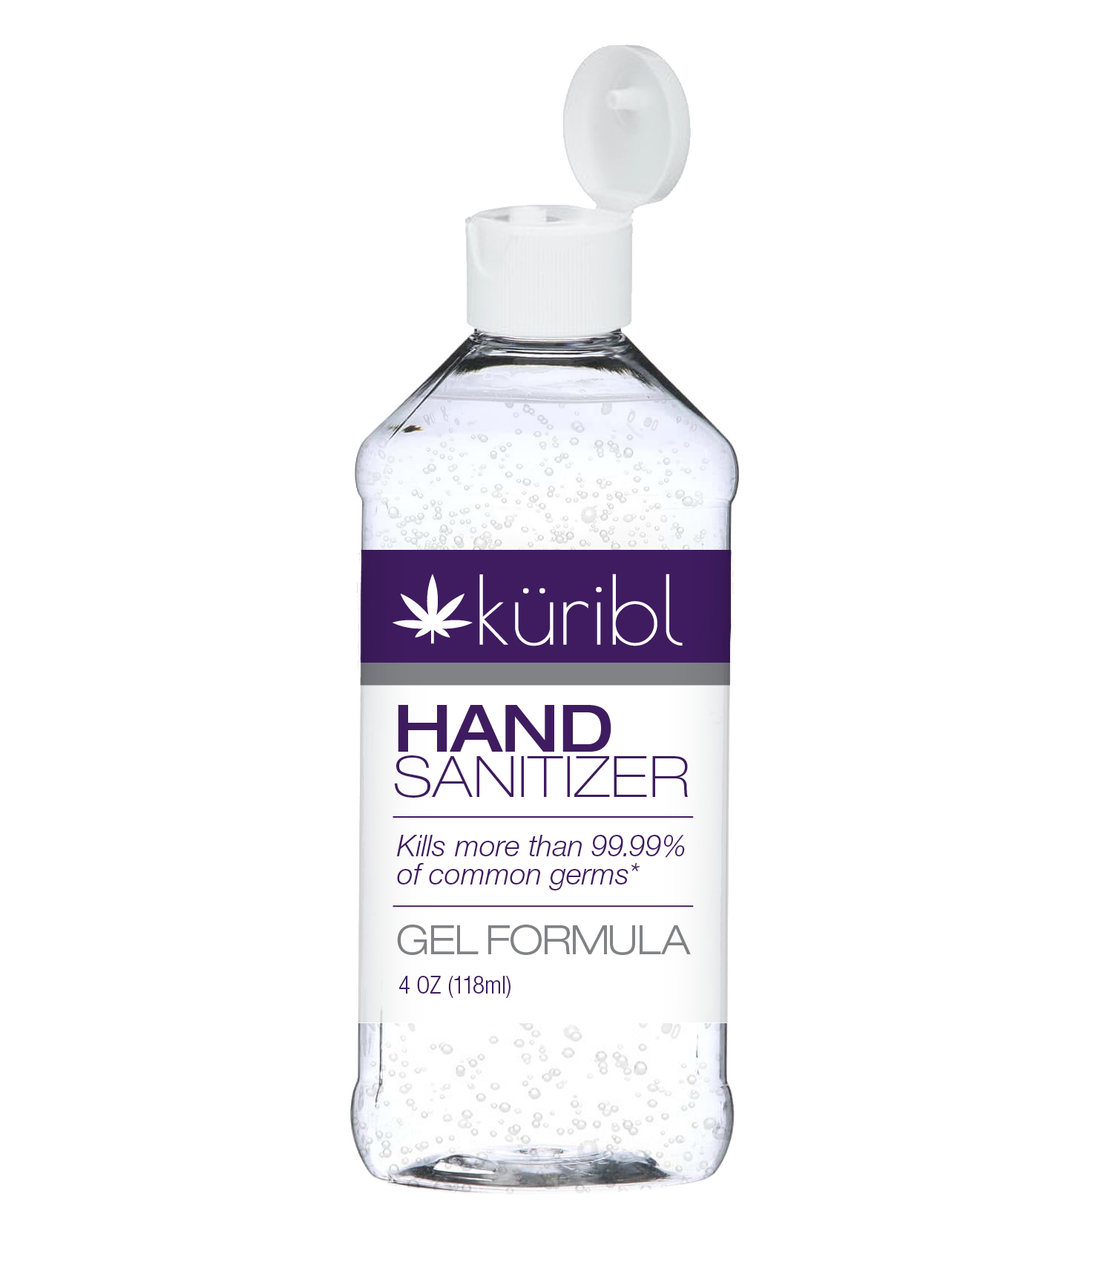 HSD Hand Sanitizer 4.0 oz Gel Formula, kills more than 99% of common germs, Wholesale bulk buys only. Made in USA